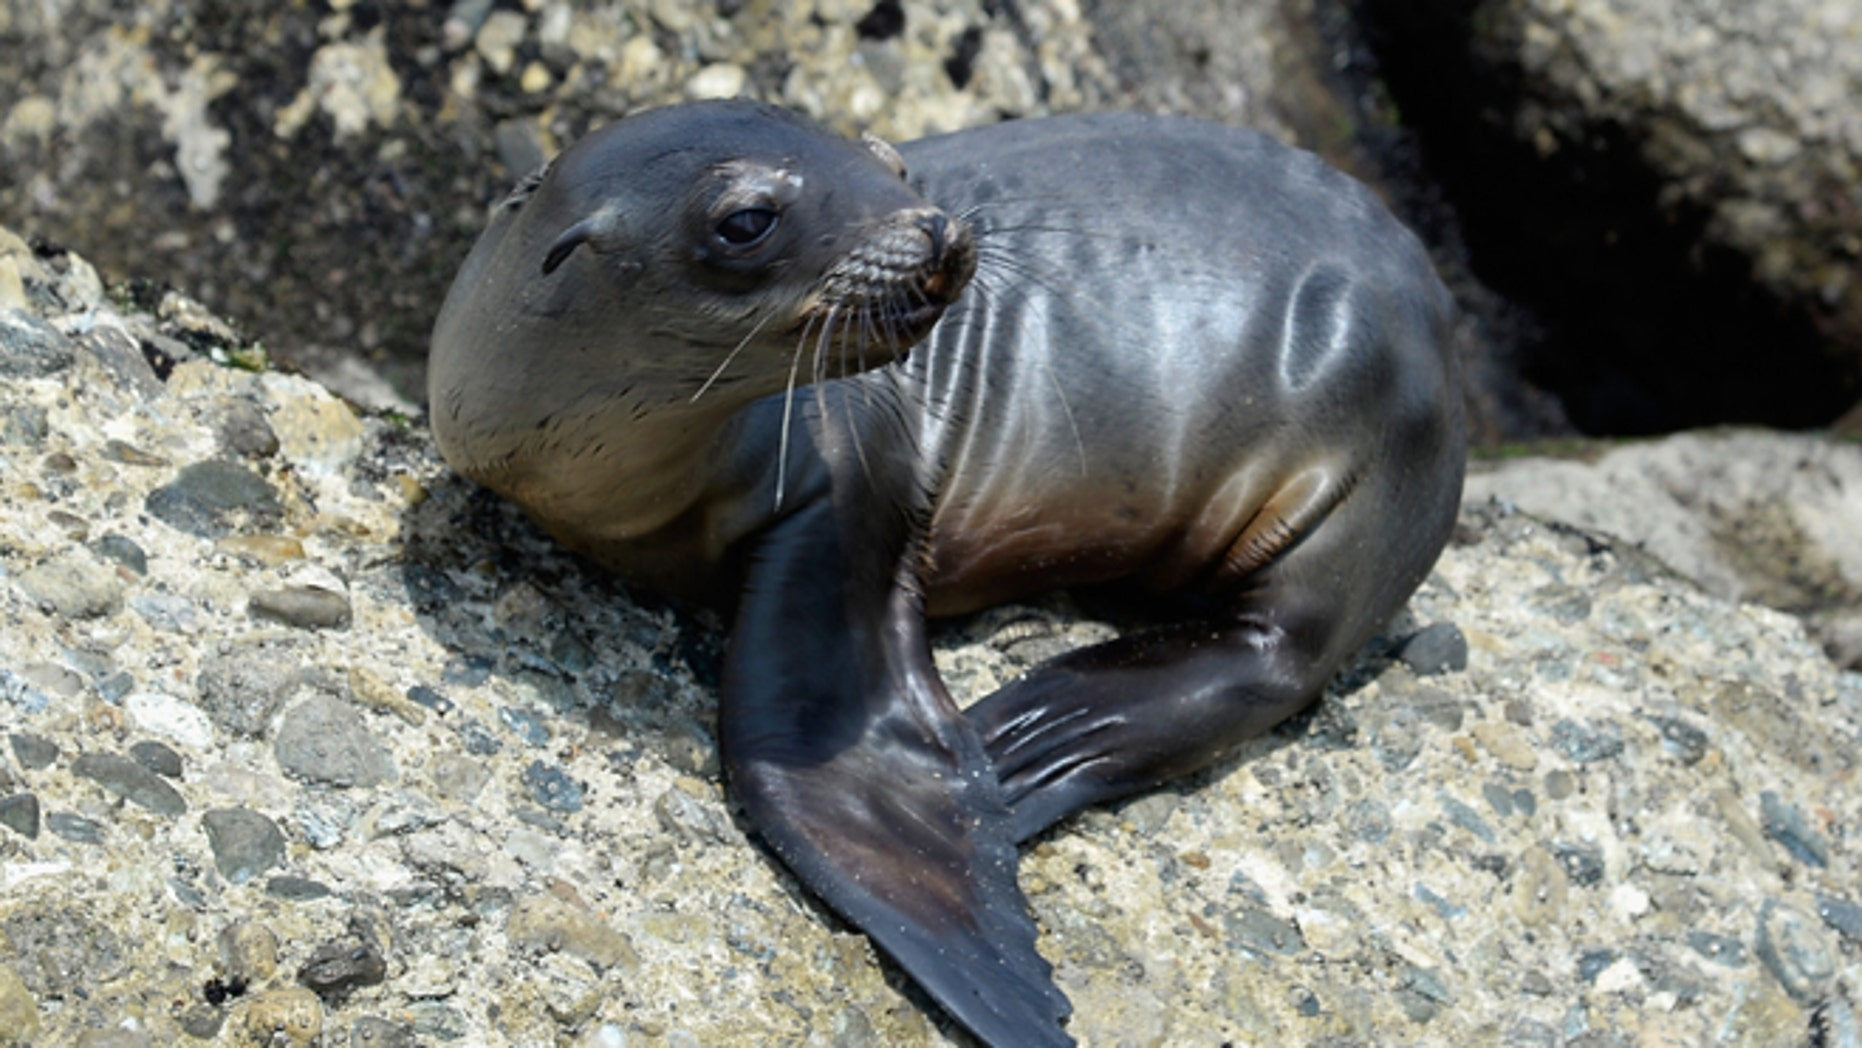 """LOS ANGELES, CA - APRIL 05:  A stranded and malnourished juvenile sea lion pup sits on the rocks of White Point Park waiting to get rescued by Peter Wallerstein of Marine Animal Rescue on April 5, 2013 in the San Pedro area of  Los Angeles, California. The sea lion pup, which weighed only 25 pounds, was transported to Marine Mammal Care Center at Fort MacArthur for rehabilitation. All along the California coast, sea lions have been getting stranded in great numbers since January for reasons unknown. The National Oceanic and Atmospheric Adminstration estimates that in the first three months of 2013, more than 900 malnourished sea lions have been rescued in the region compared to 100 during the same time period one year ago. Officials have declared an """"unusual mortality event"""" for the California sea lion, a designation that prompts immediate federal response.  (Photo by Kevork Djansezian/Getty Images)"""